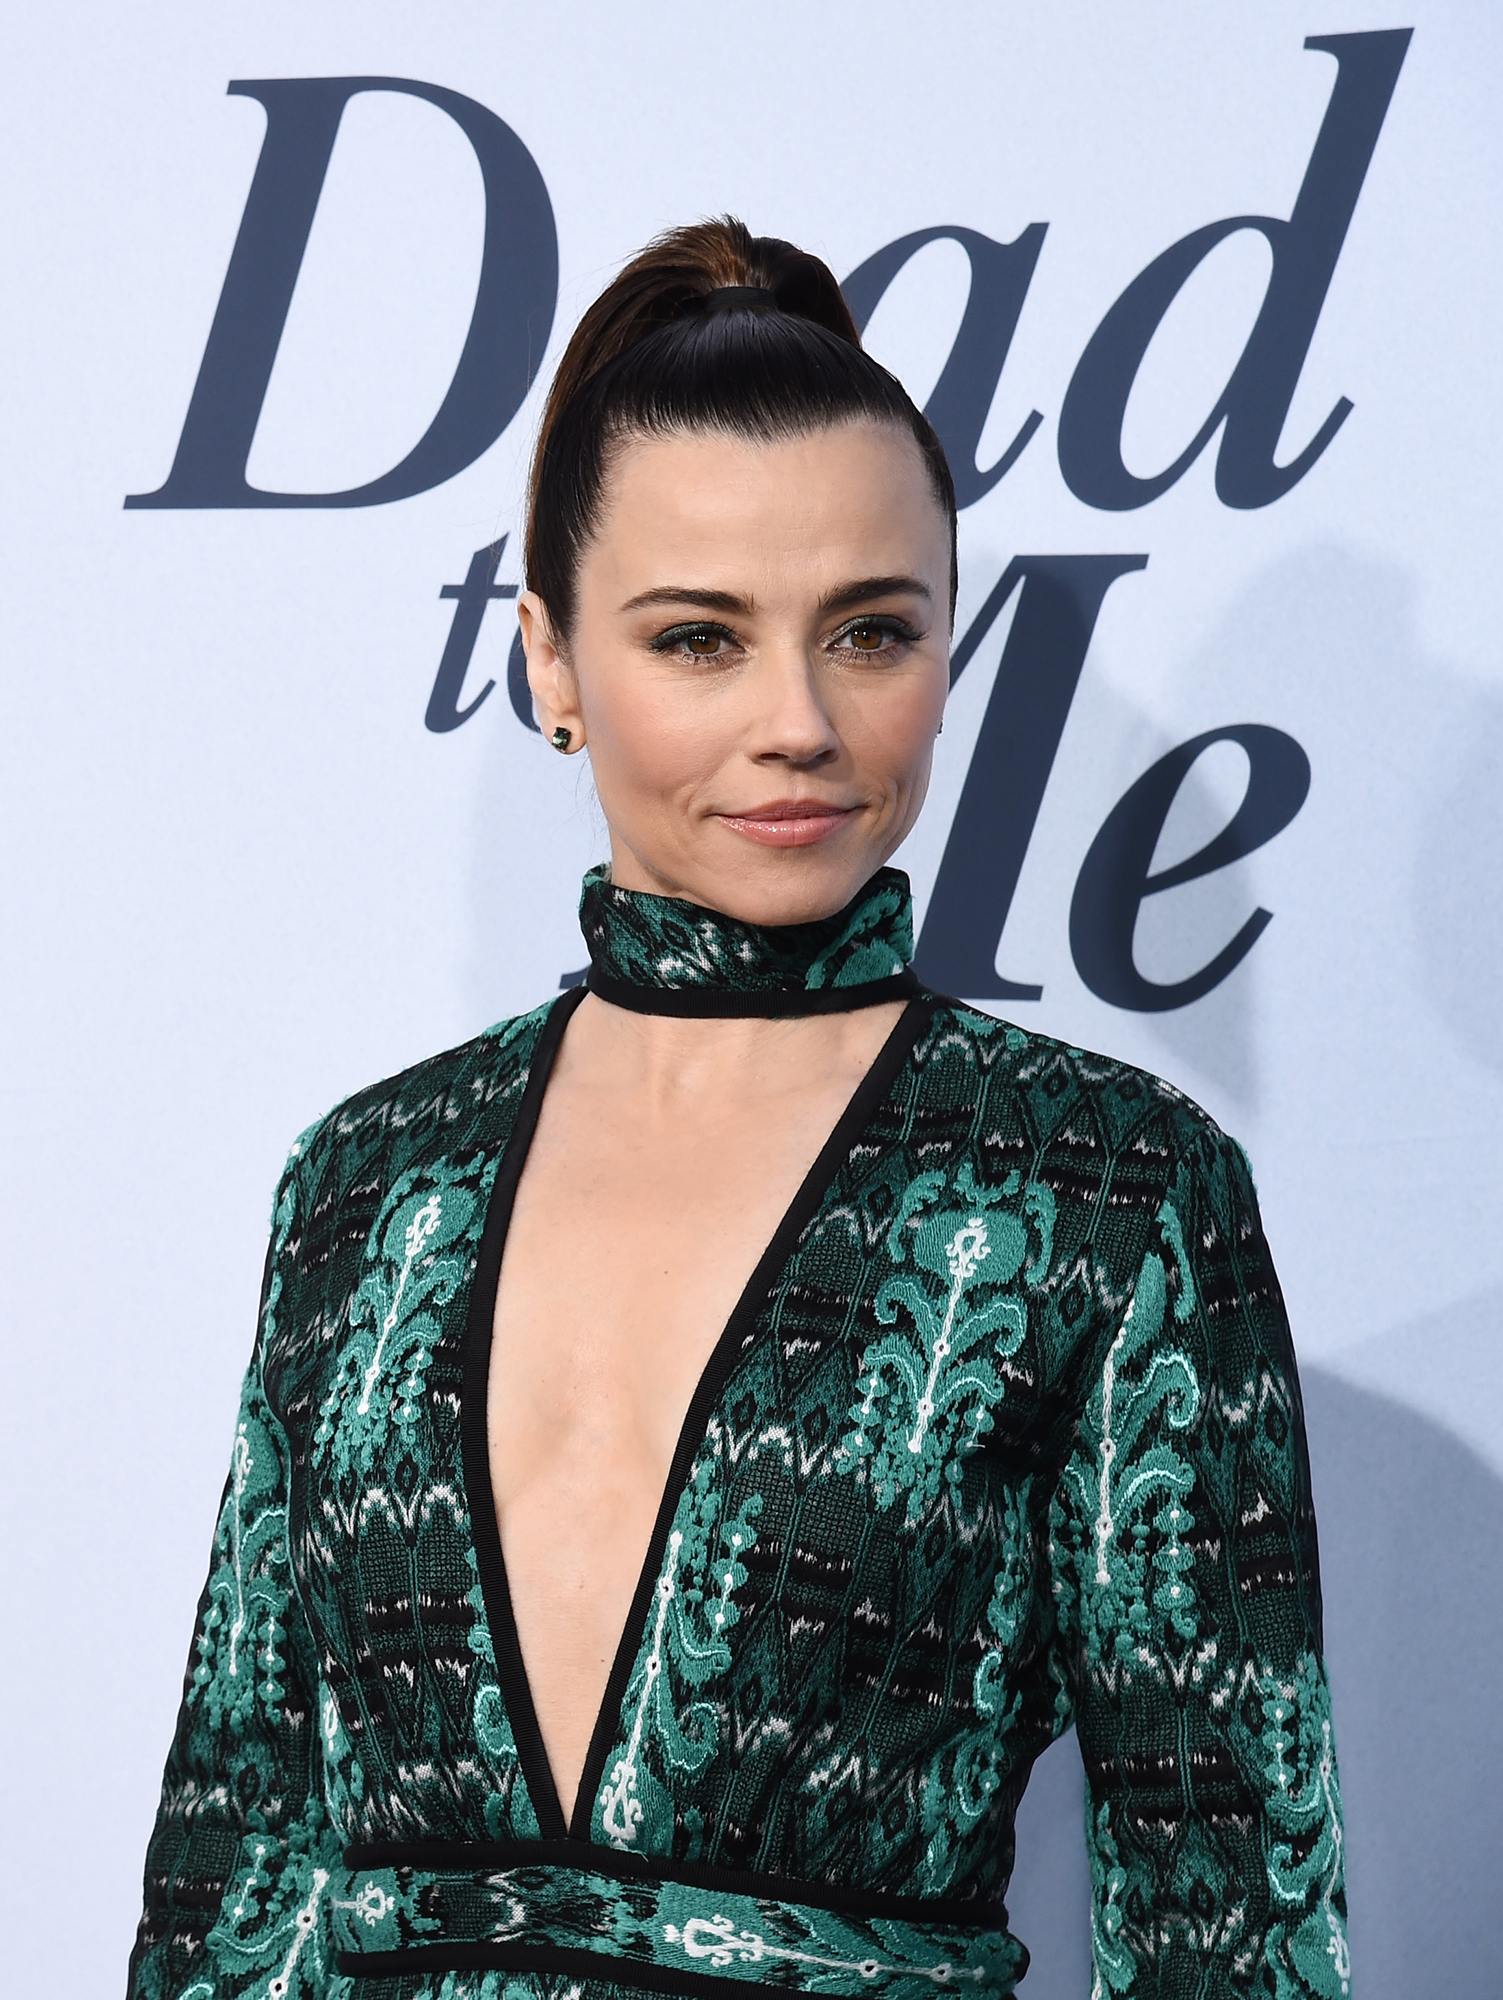 """Linda Cardellini Talks 'Freaks and Geeks' Reboot - Linda Cardellini arrives at Netflix's """"Dead To Me"""" Season 1 Premiere at The Broad Stage on May 02, 2019 in Santa Monica, California."""